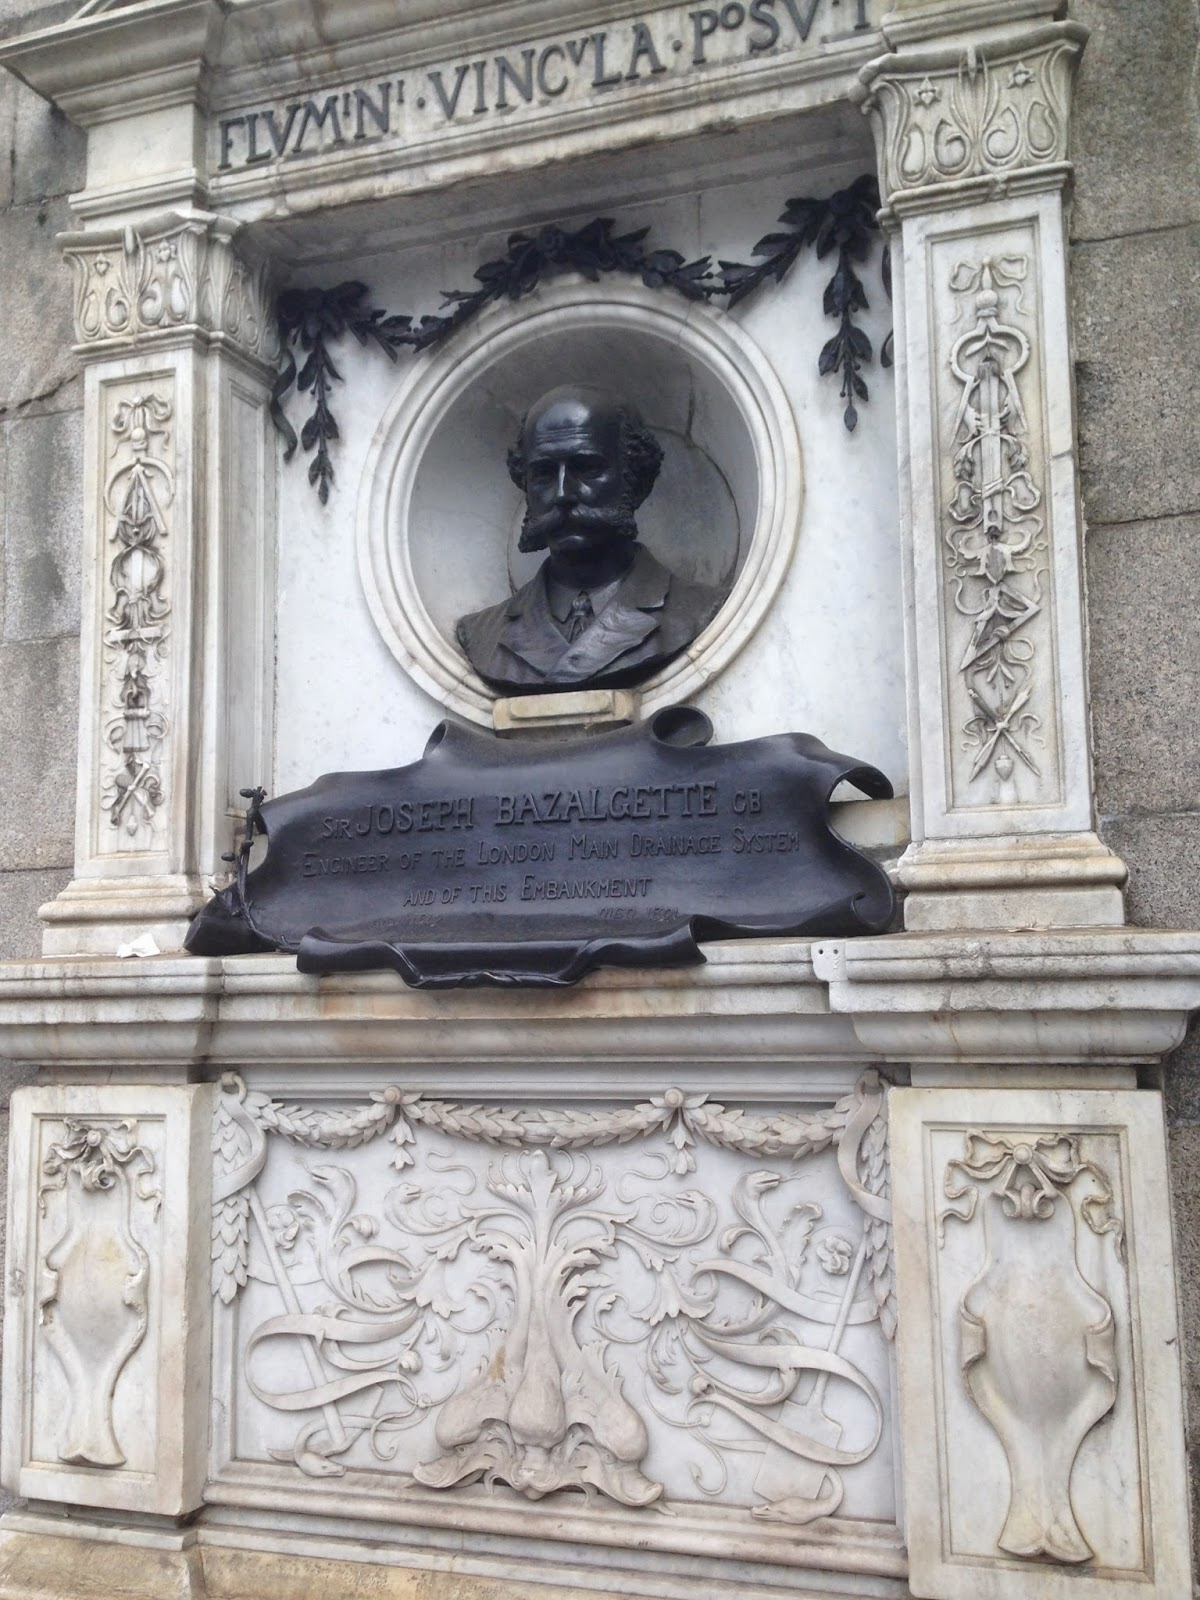 Memorial to Sir Joseph Bazalgette